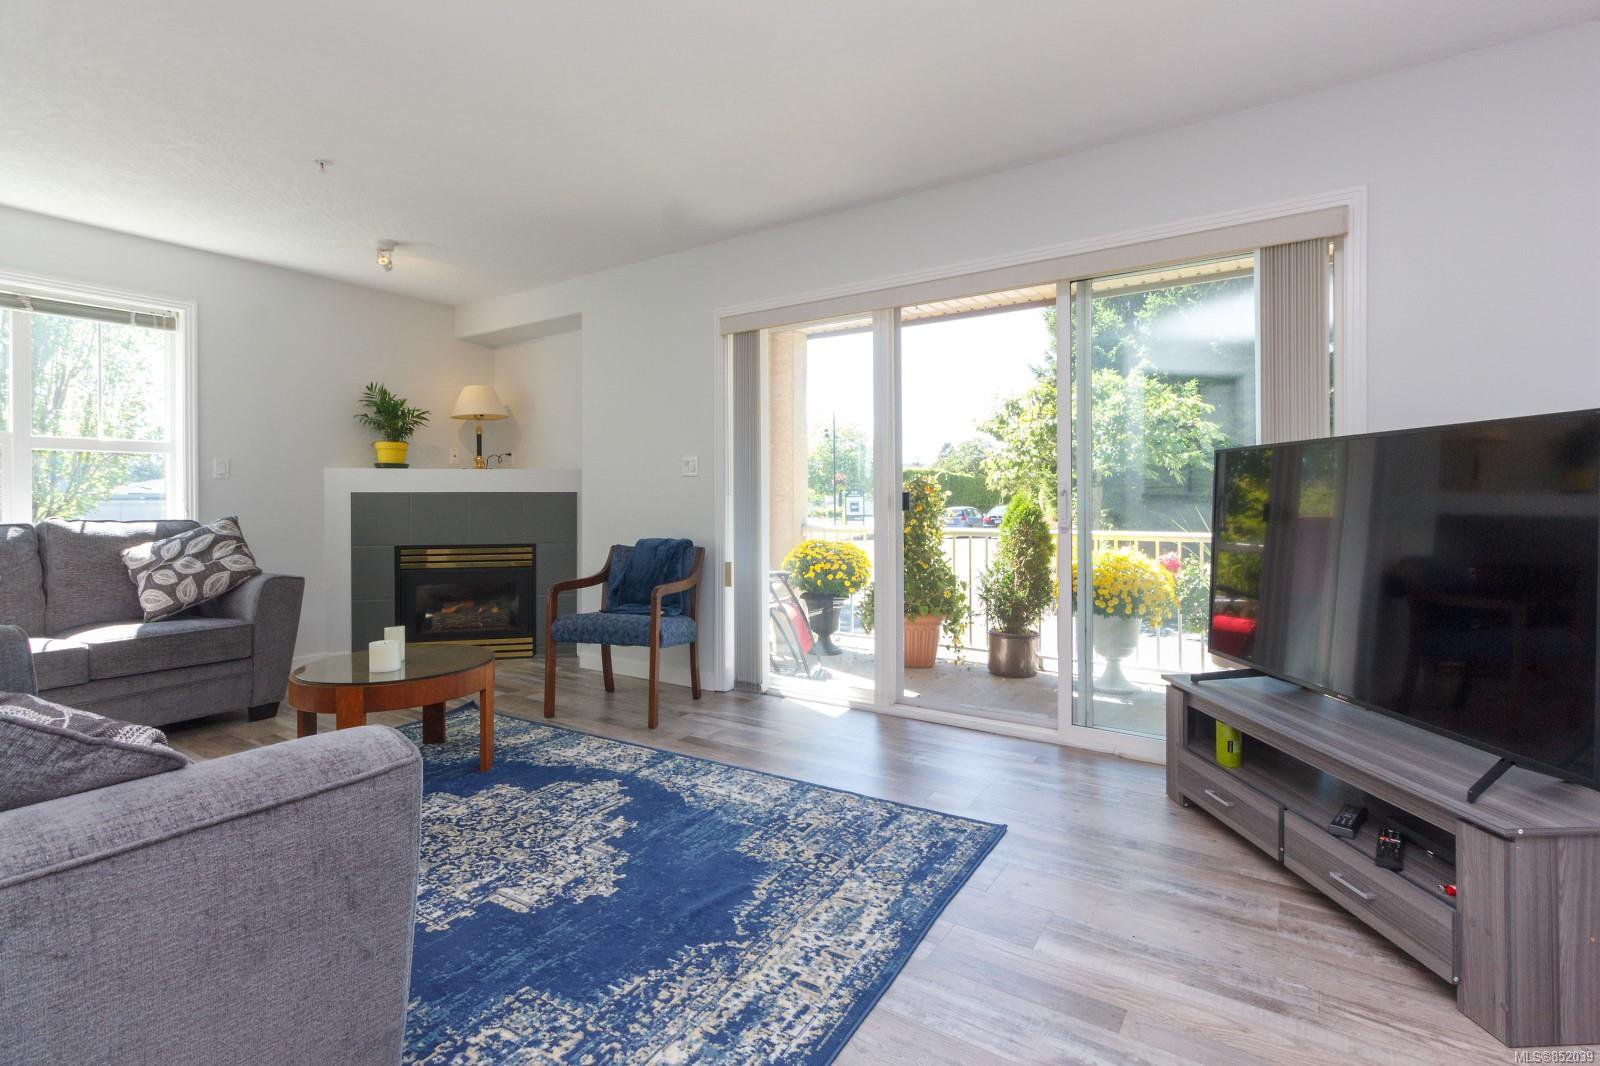 Photo 7: Photos: 109 1240 Verdier Ave in : CS Brentwood Bay Condo for sale (Central Saanich)  : MLS®# 852039